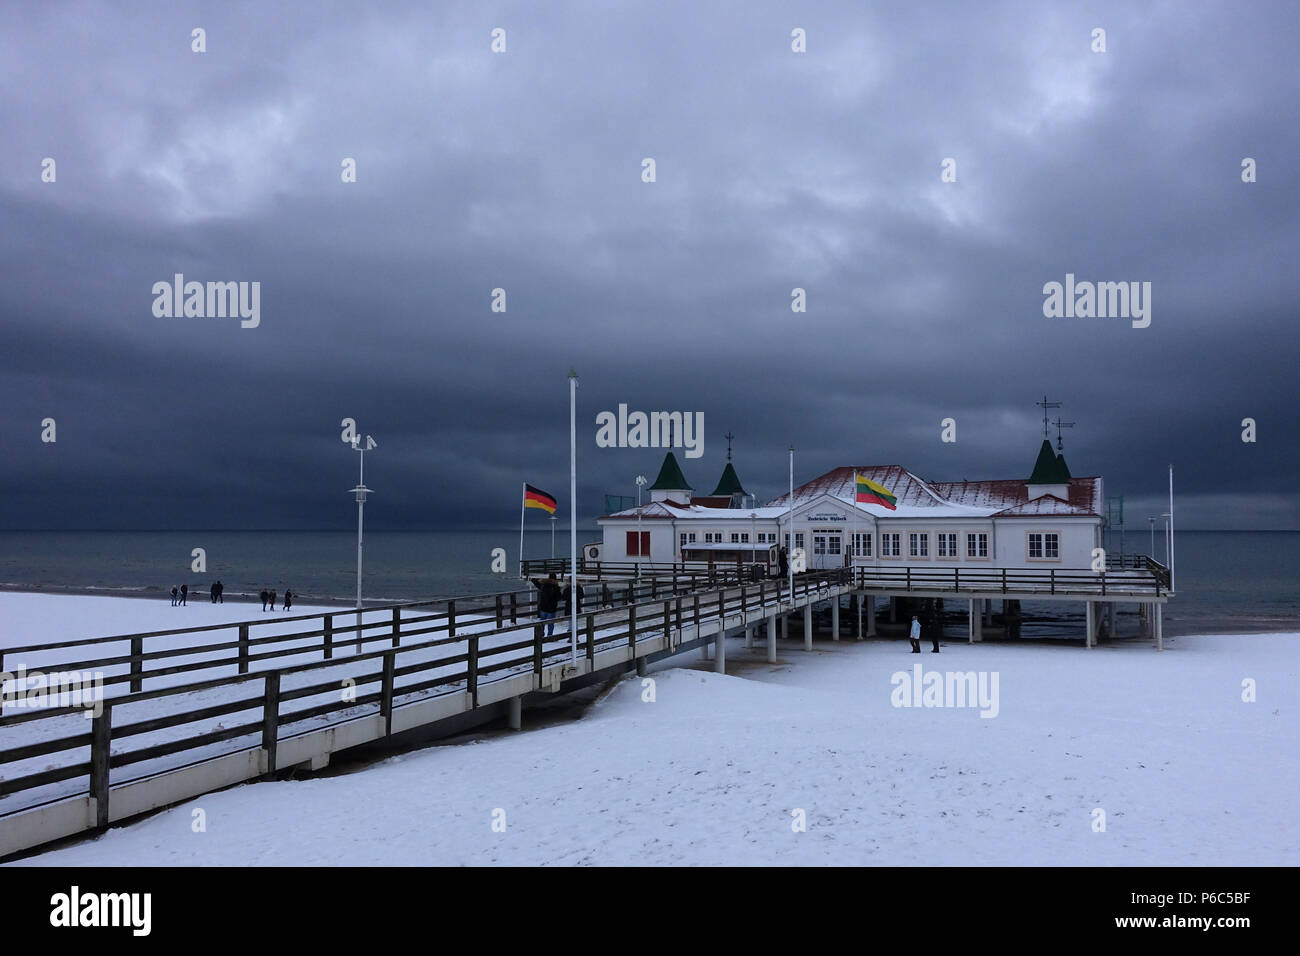 Ahlbeck, Germany, view of the sea bridge in winter in bad weather - Stock Image